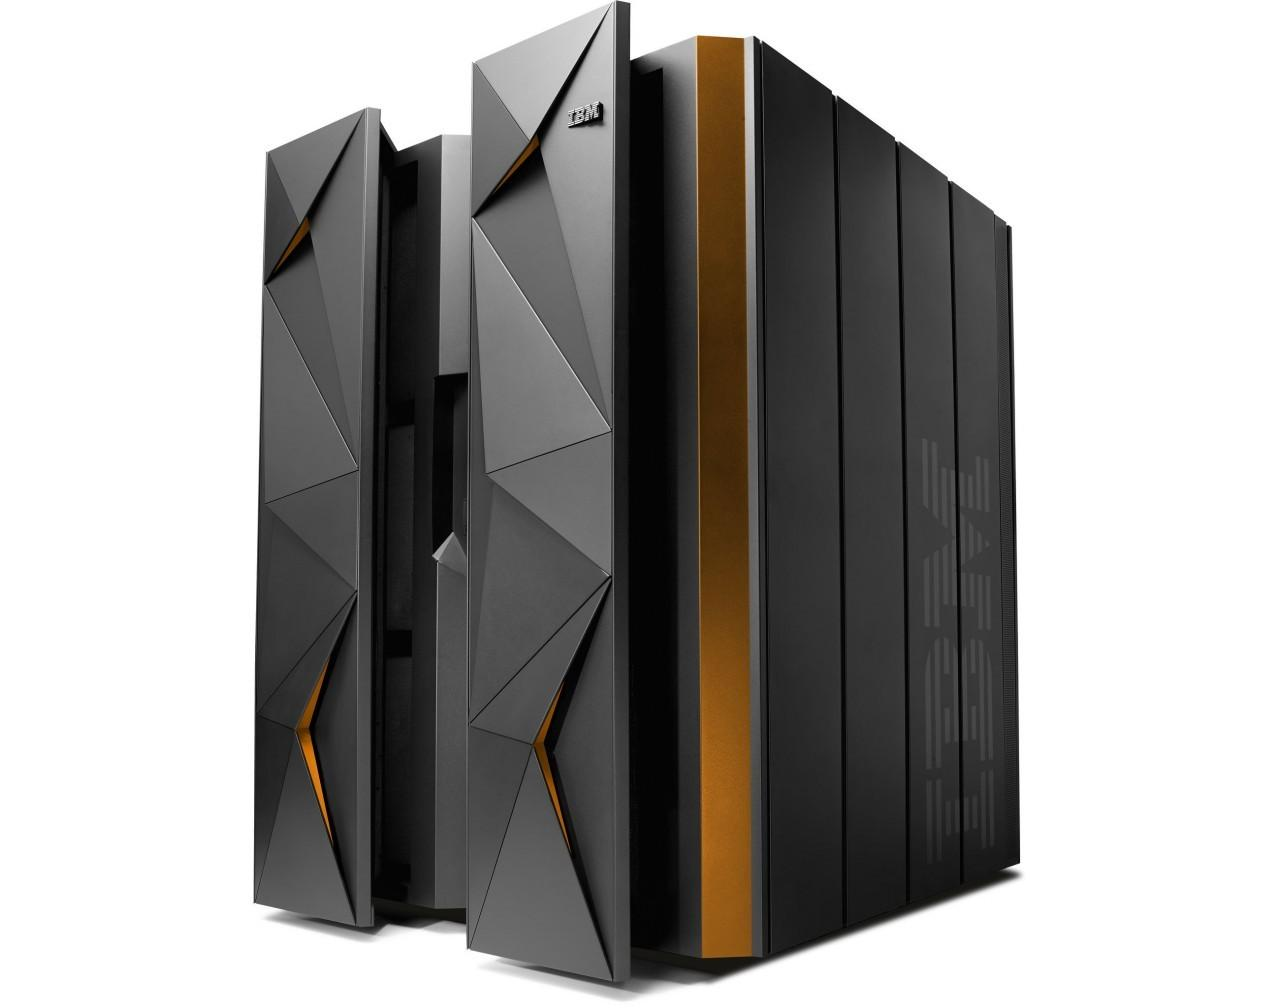 IBM's crazy LinuxONE servers pitch open-source to mainstream